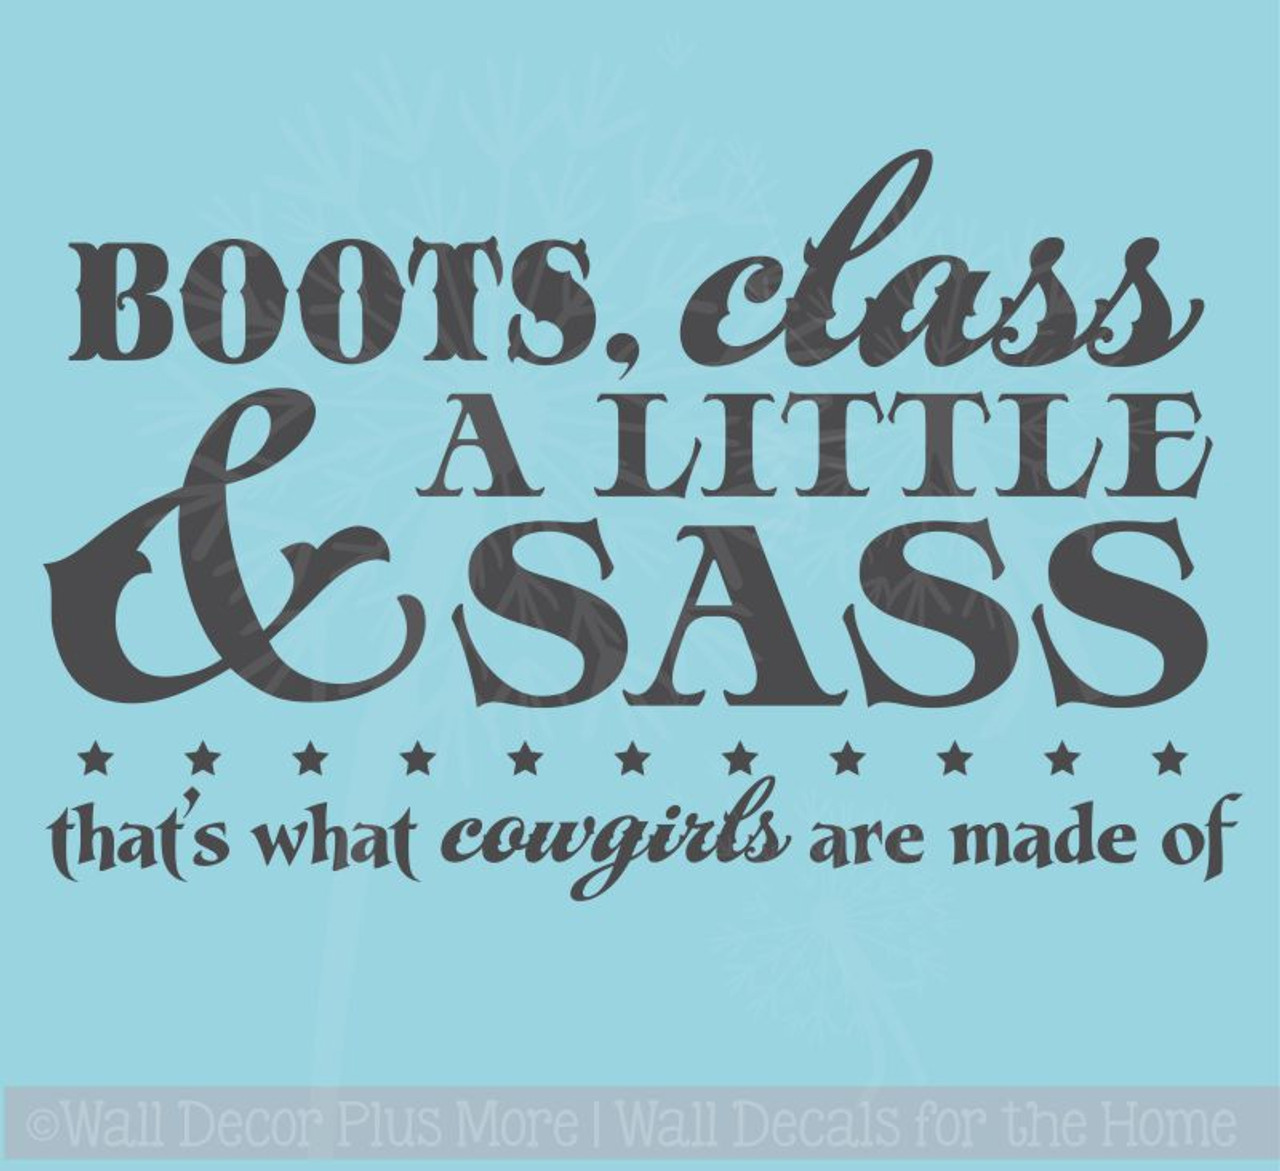 Boots Class A Little Sass Thatu0027s What Cowgirls Western Quotes Wall Decal Wall Words  sc 1 st  Wall Decor Plus More & Boots Class A Little Sass Thatu0027s What Cowgirls Western Quotes Wall ...